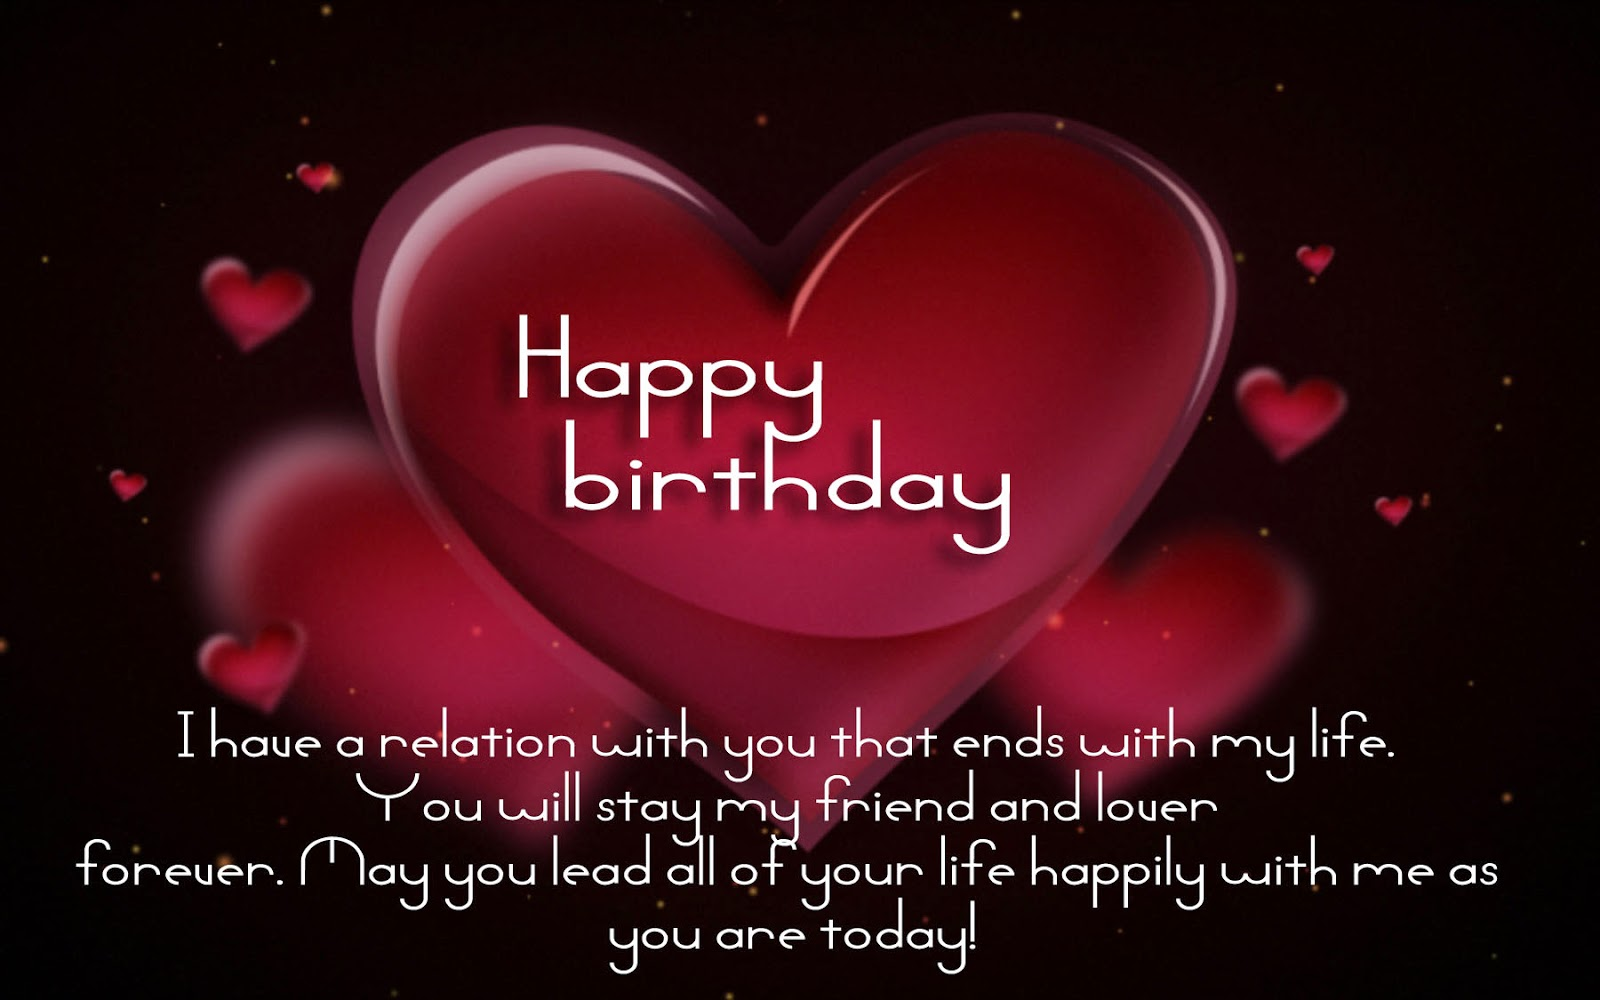 The Collection of Sweet Birthday Wishes to Send to Your Boyfriend on His Birthday 3